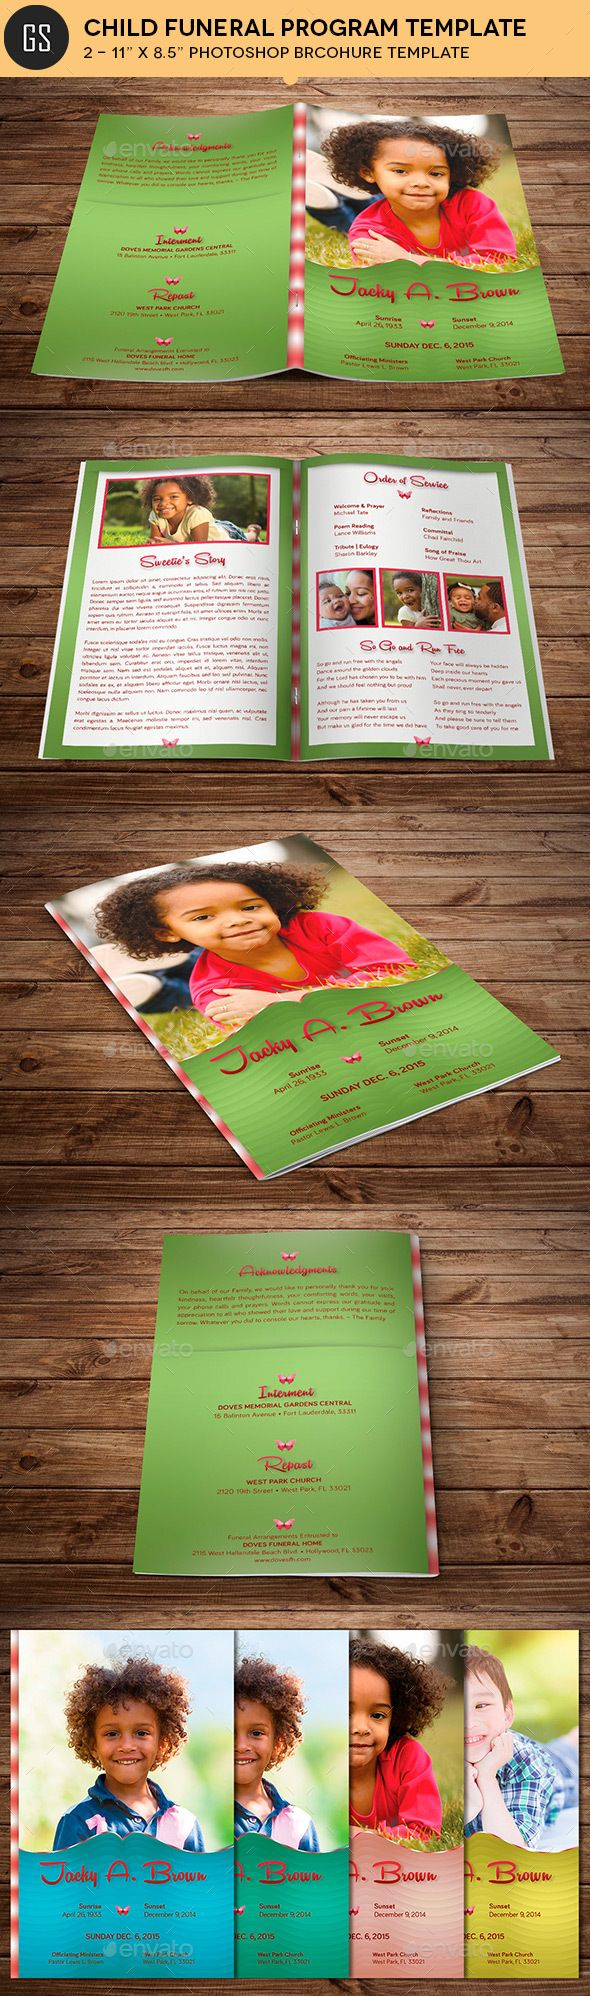 Child Funeral Program Template #Photoshop - Informational #Brochures